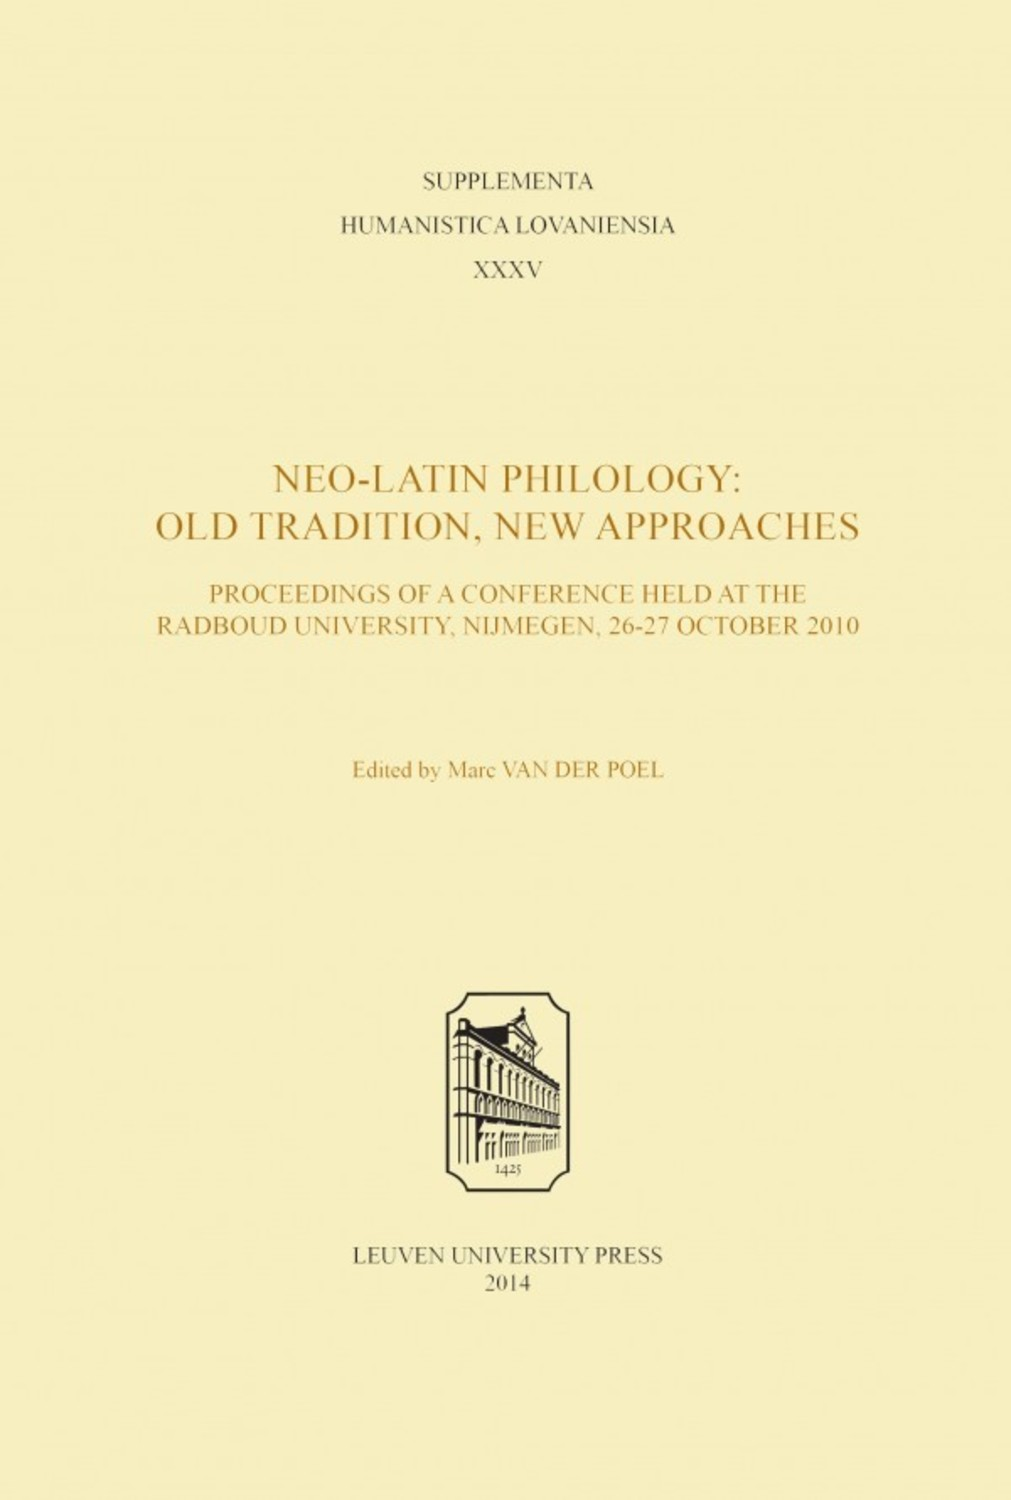 Neo-Latin Philology: Old Tradition, New Approaches